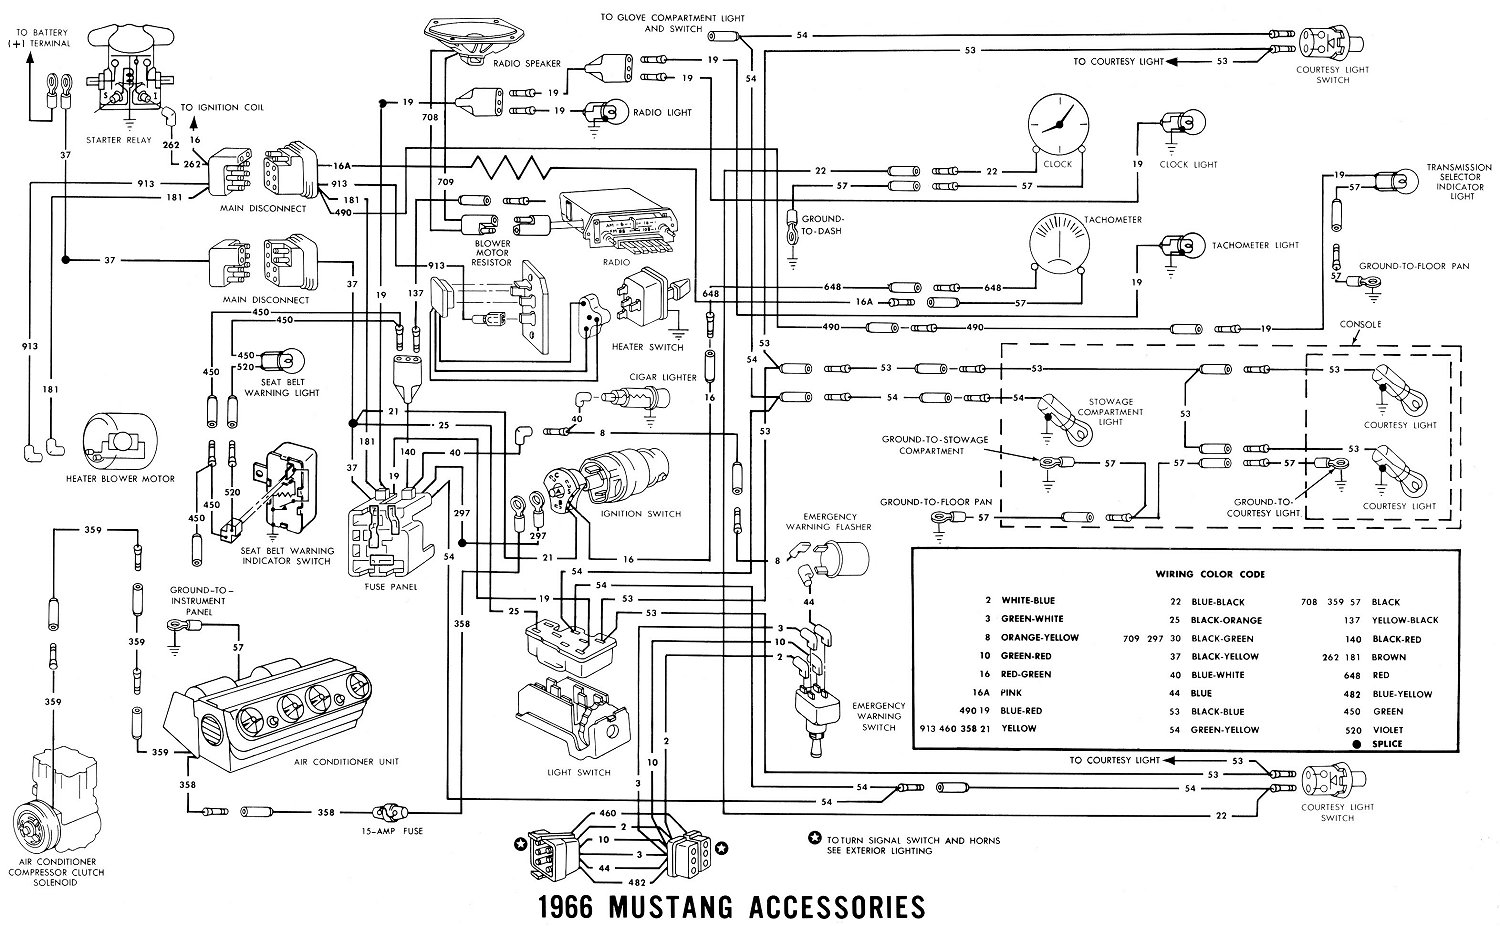 1966 Ford Mustang Heater Wiring Diagram wiring data